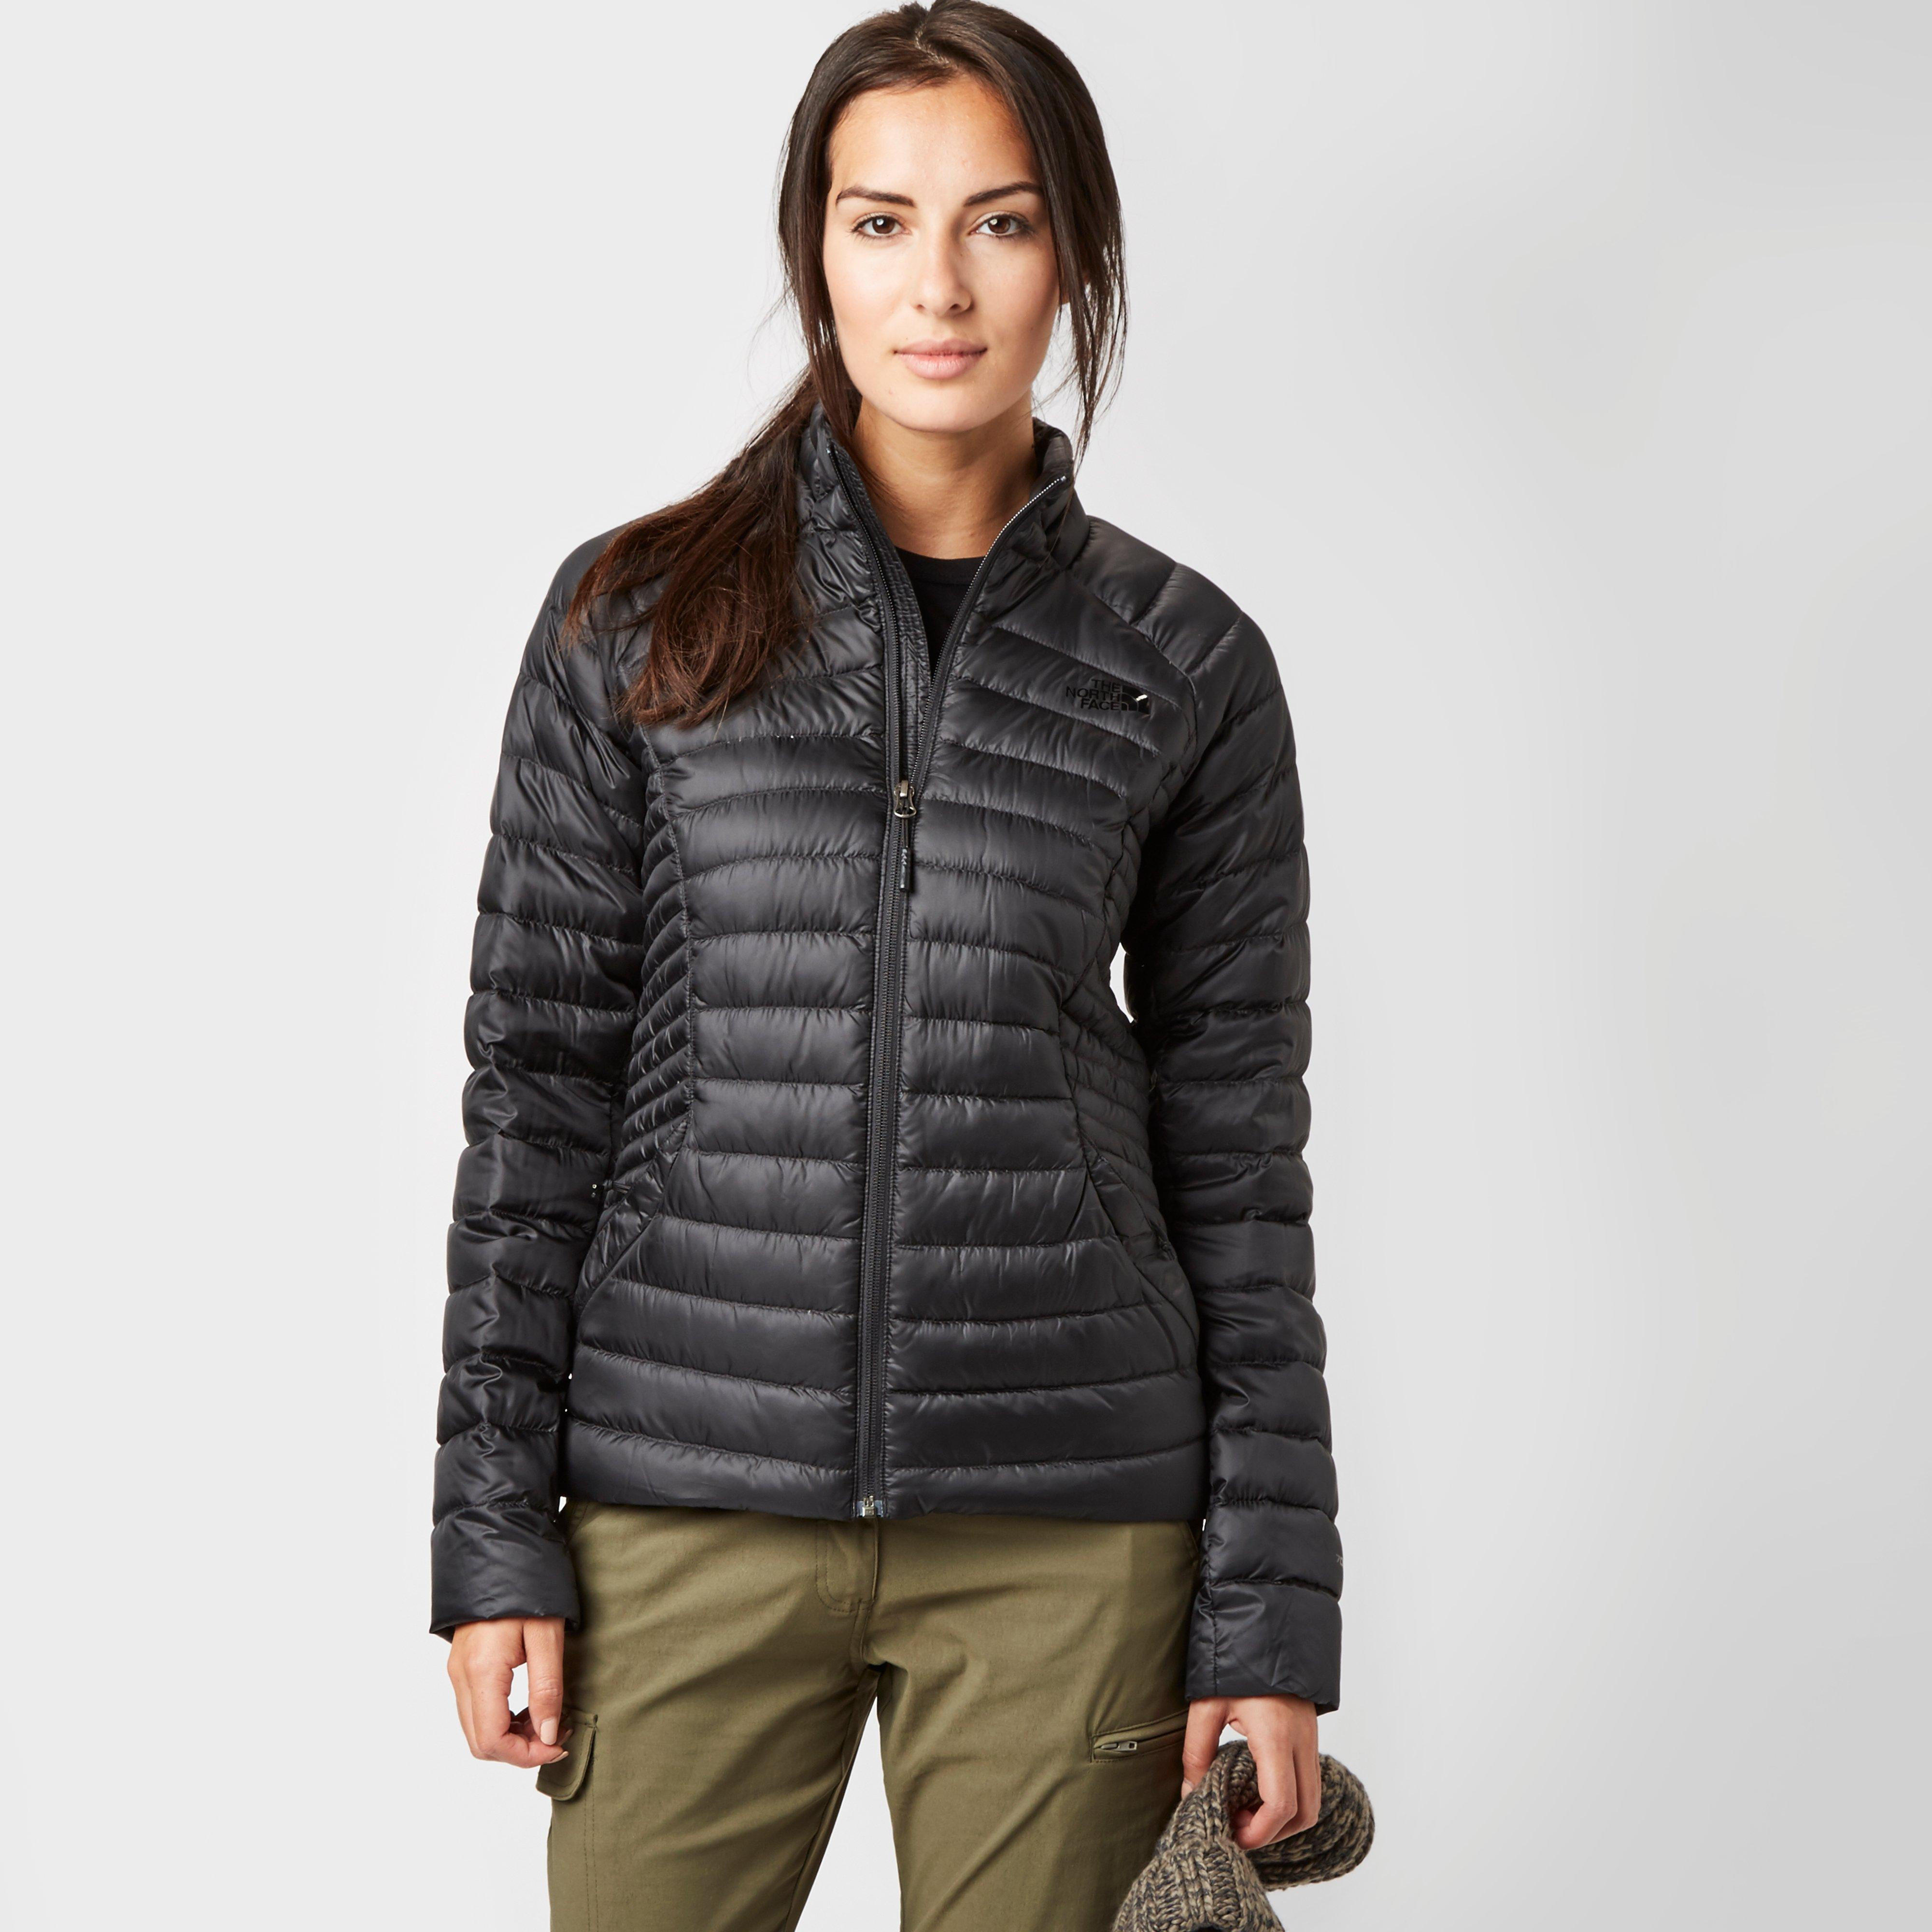 North face coats for womens